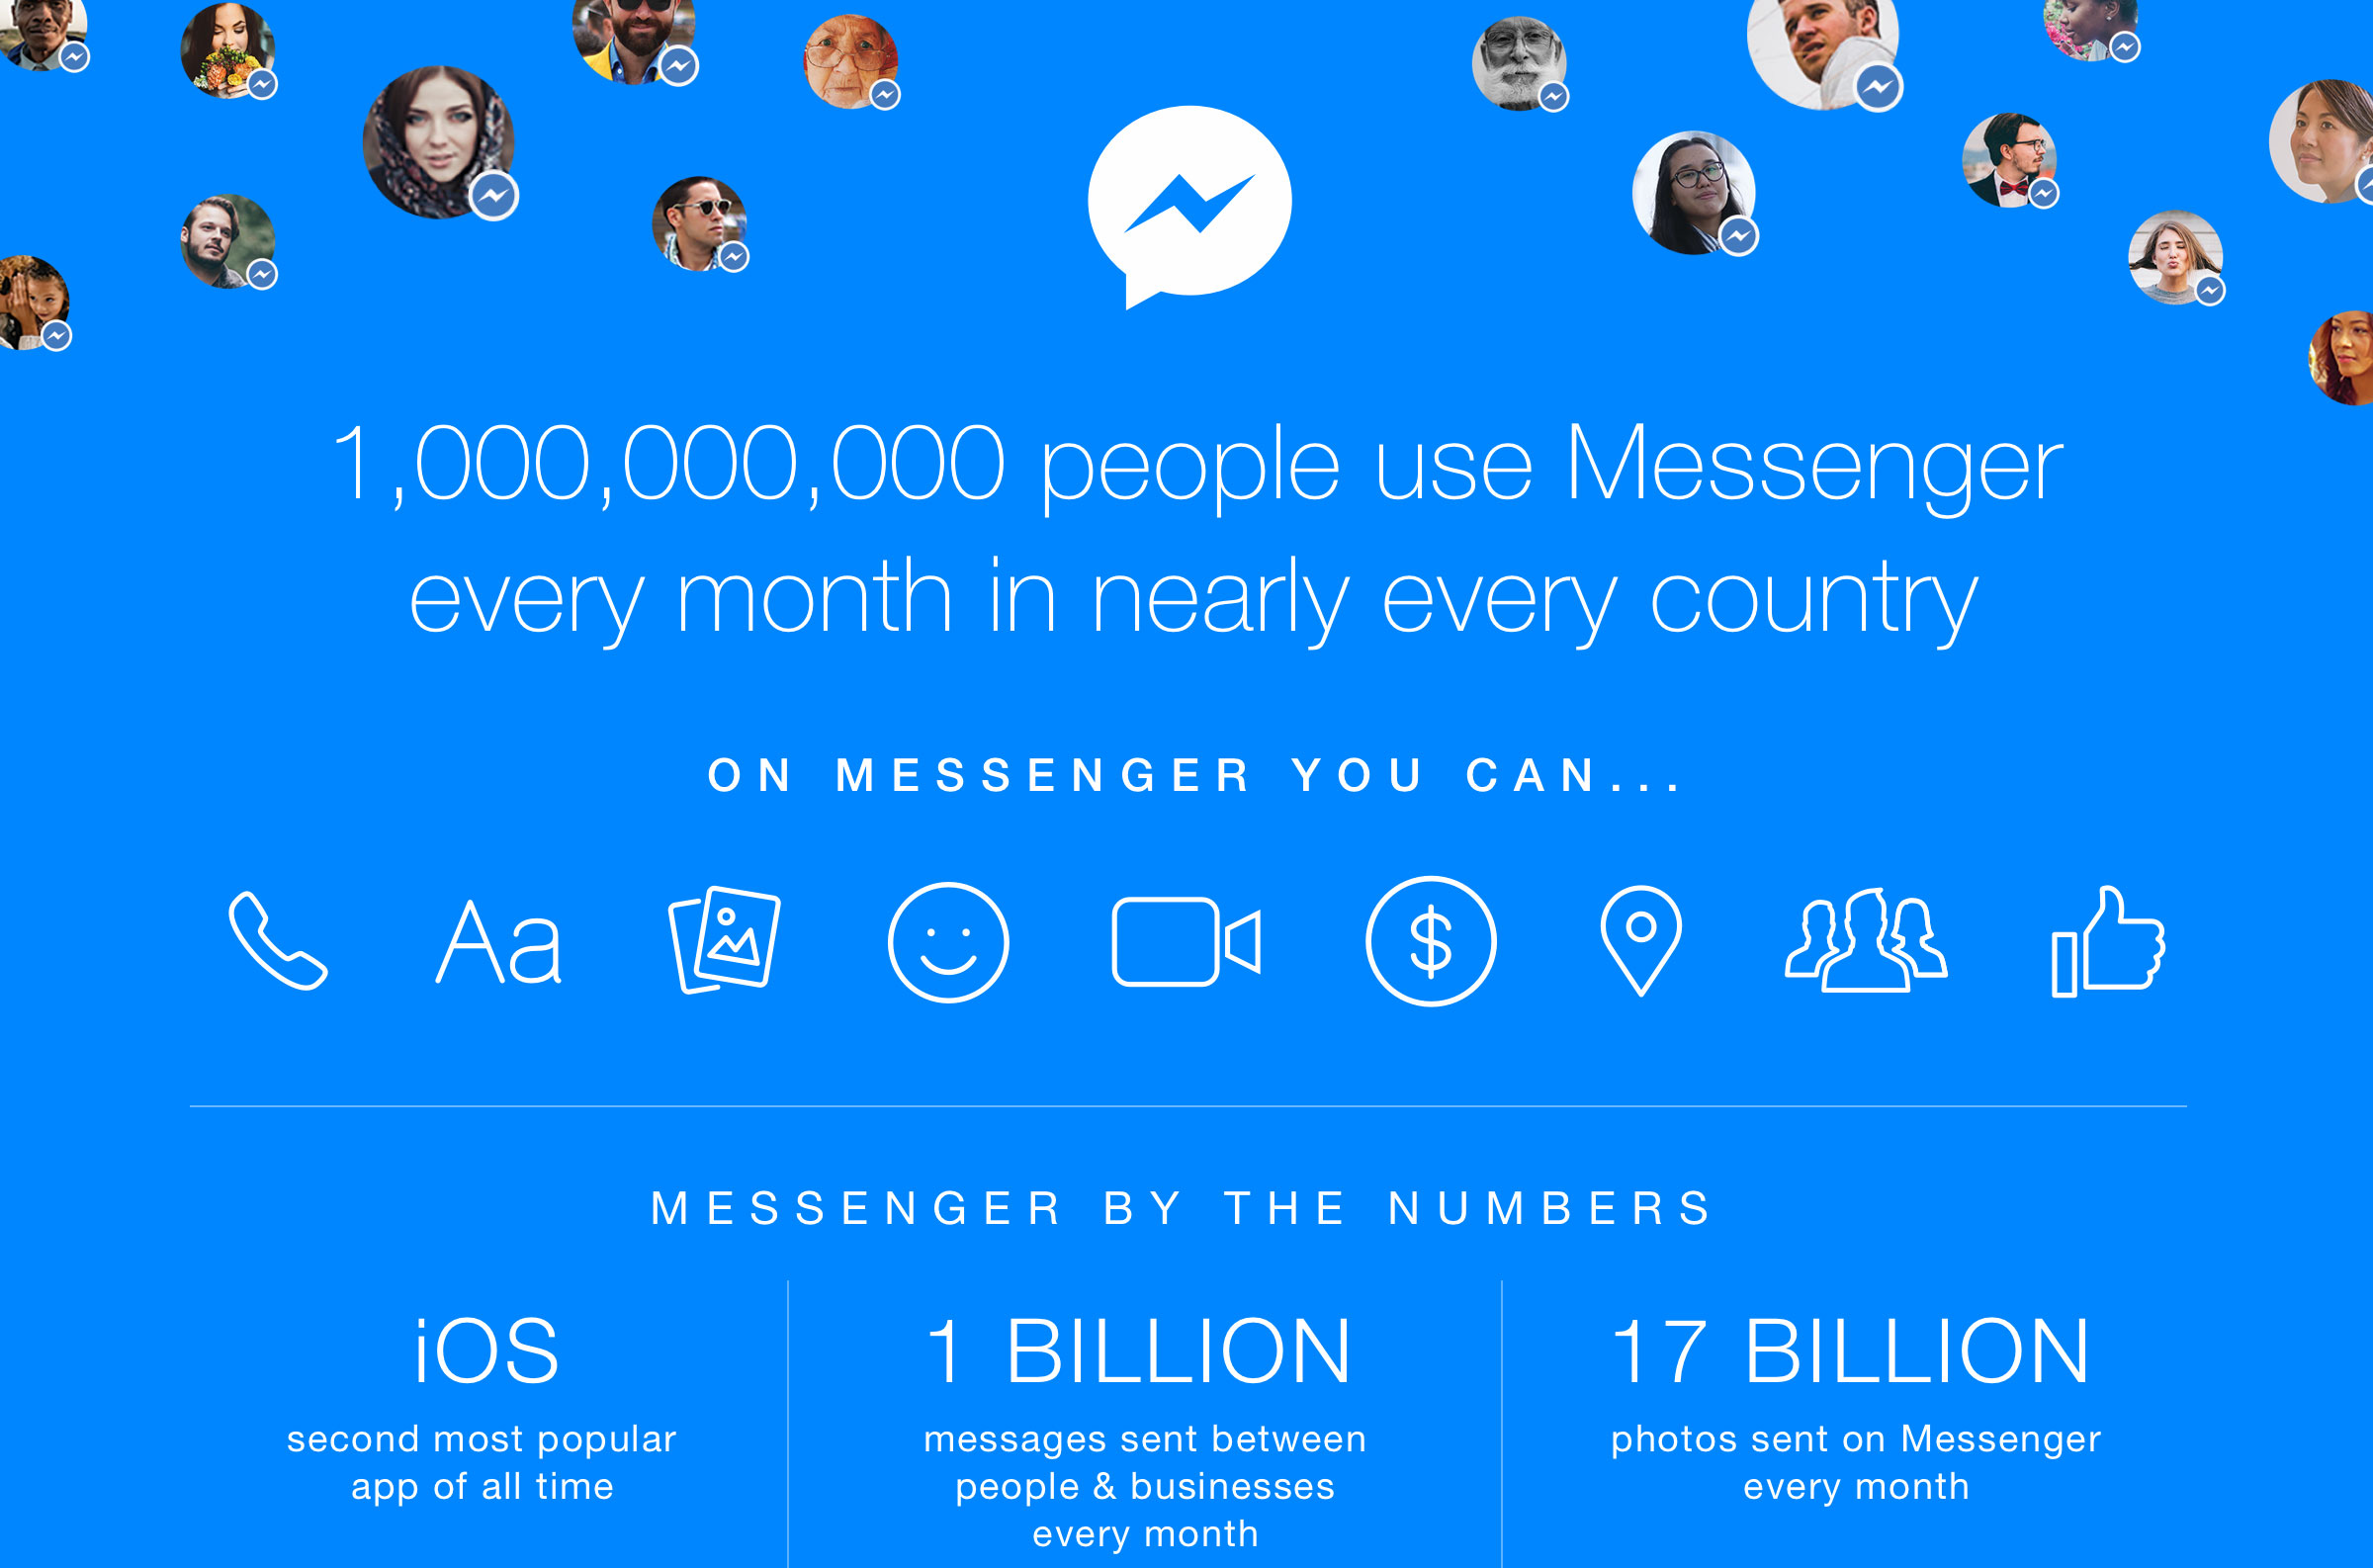 Facebook Messenger by the numbers